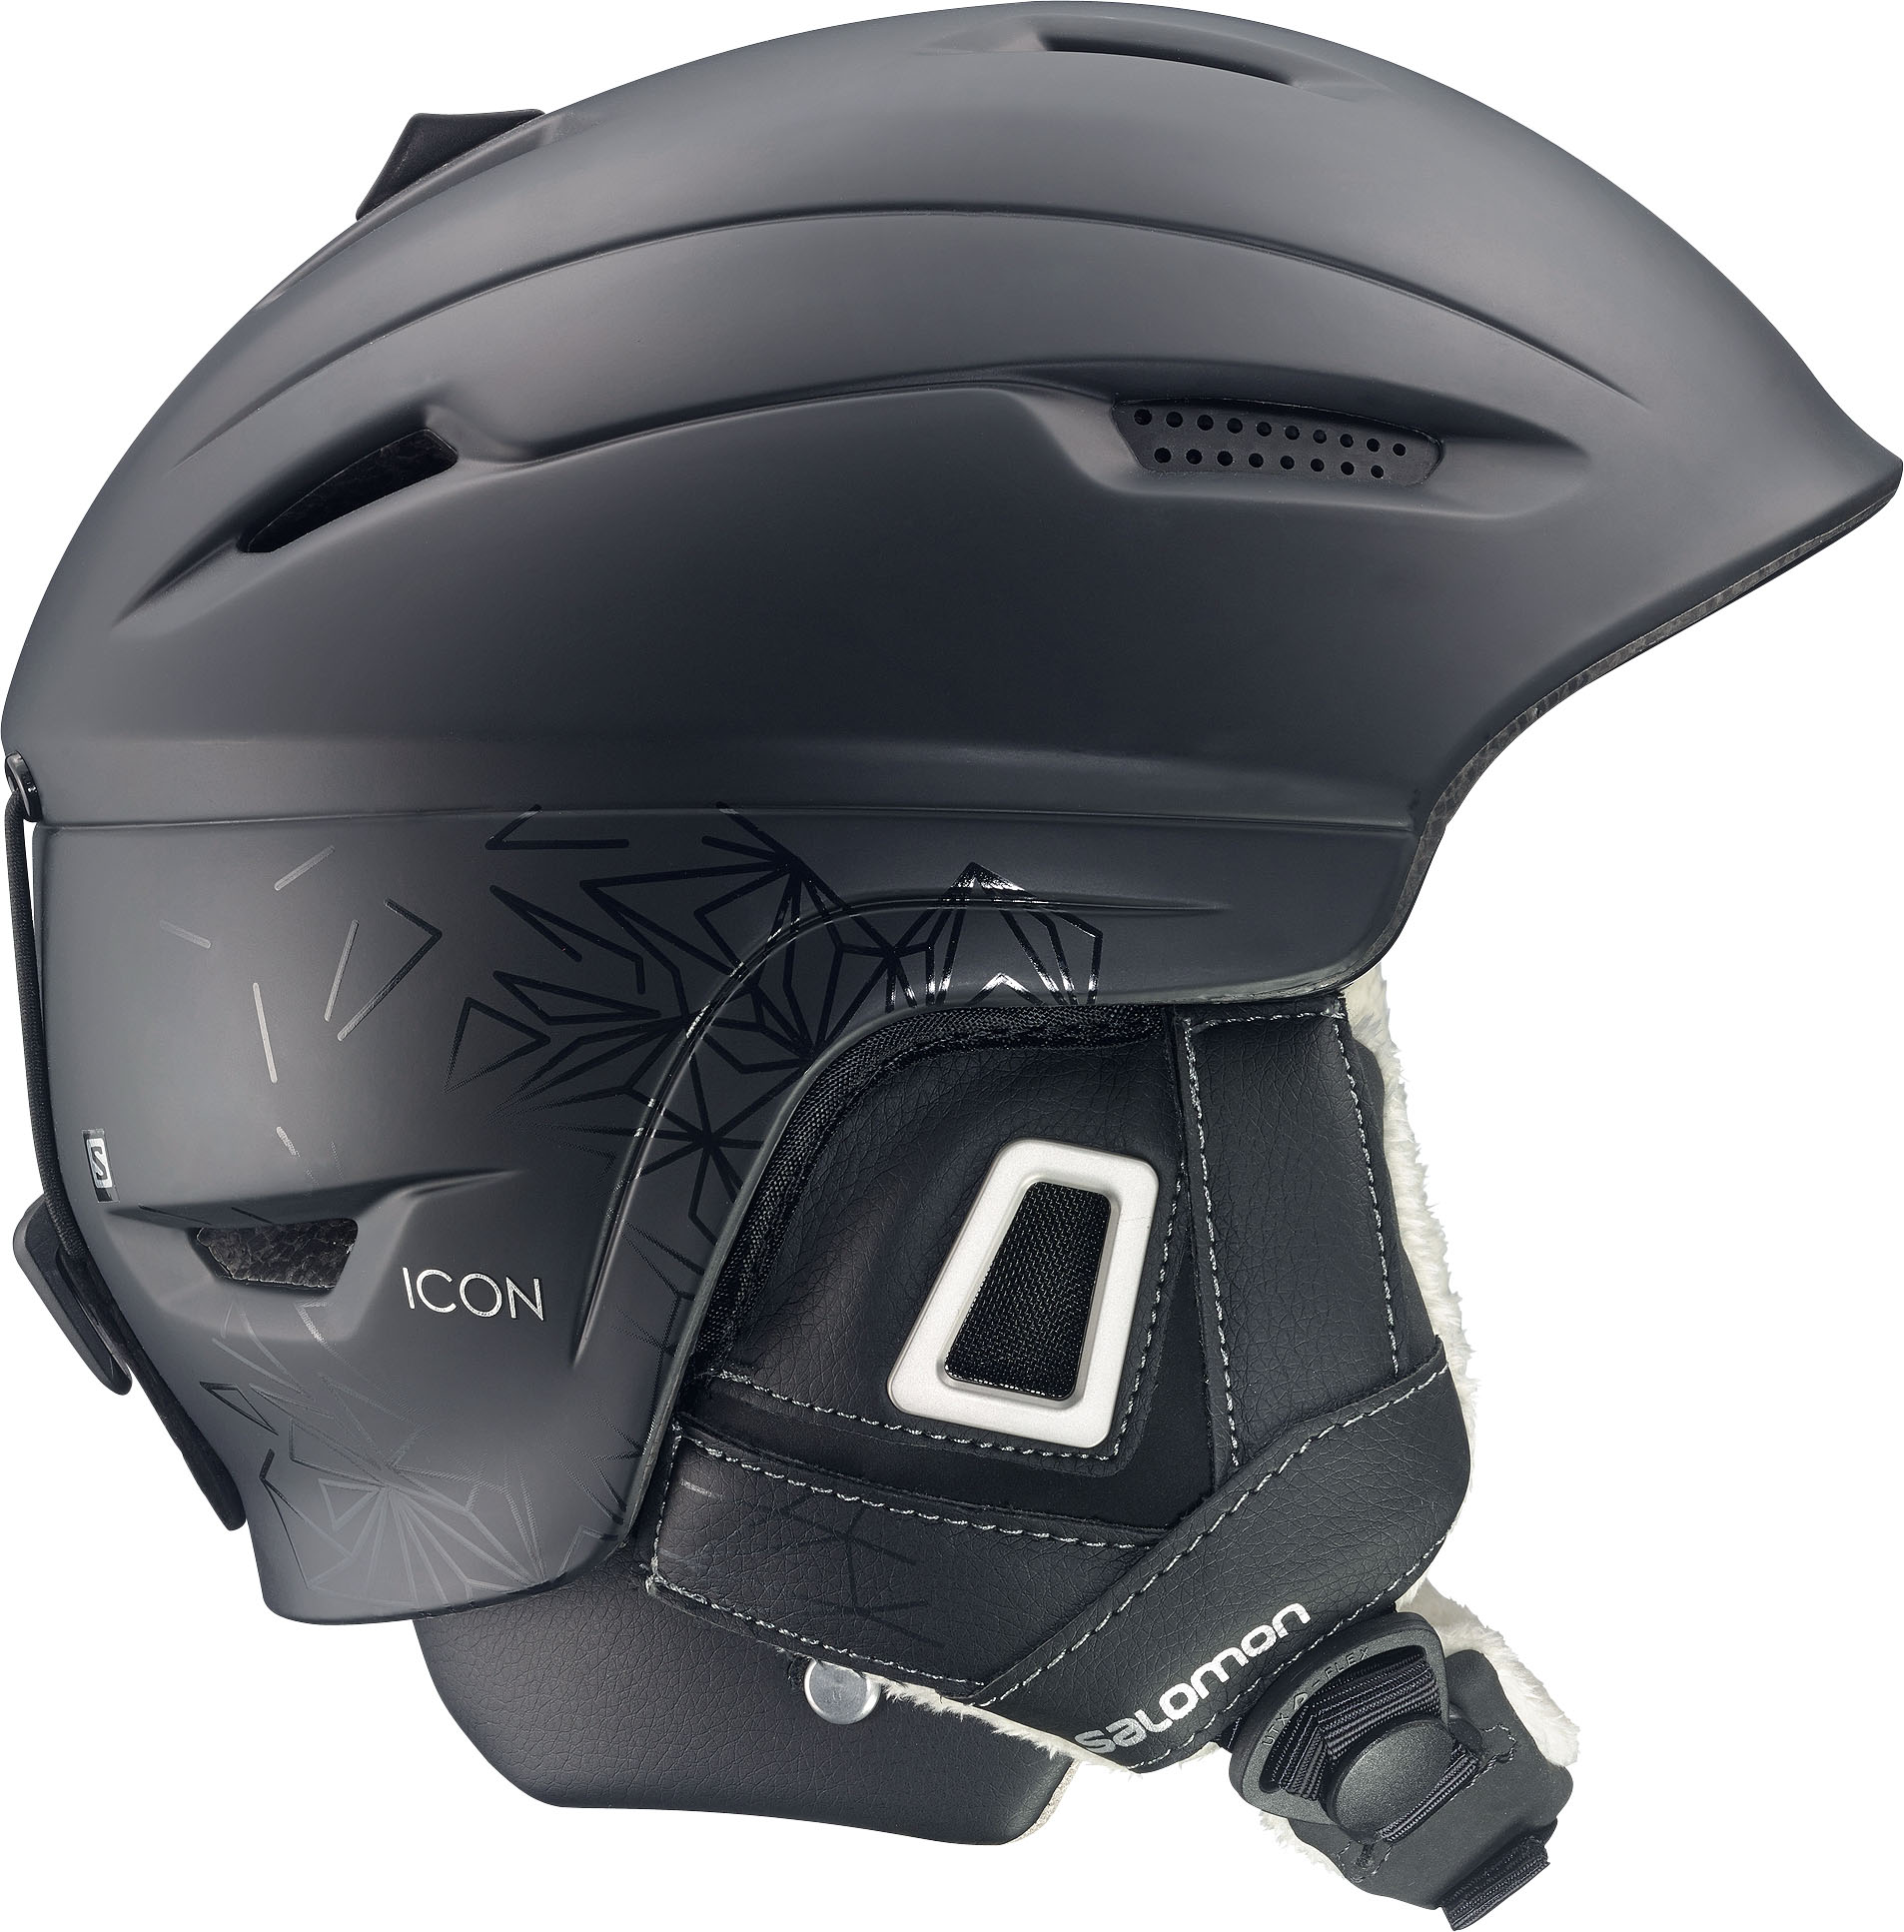 Salomon Icon Custom Air Womens Ski Helmet in Black £115.00 fc0f78b610